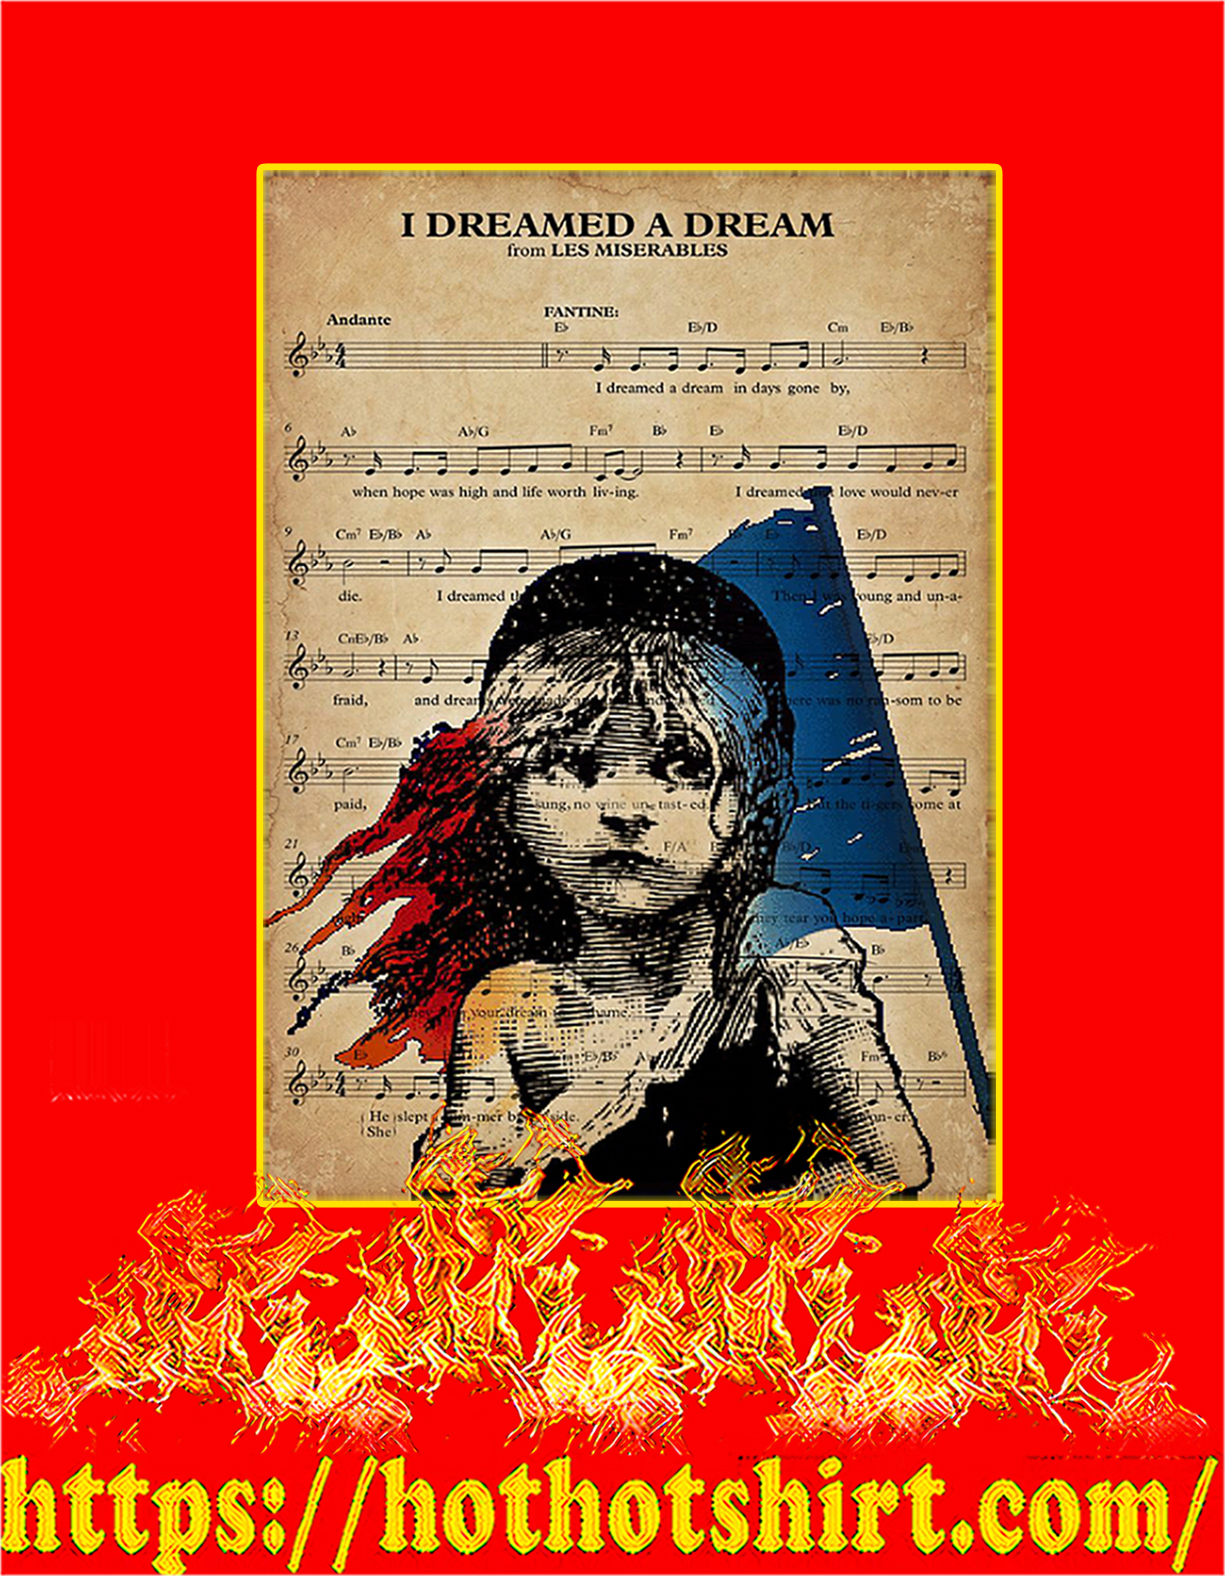 I dreamed a dream from les miserables poster - A4